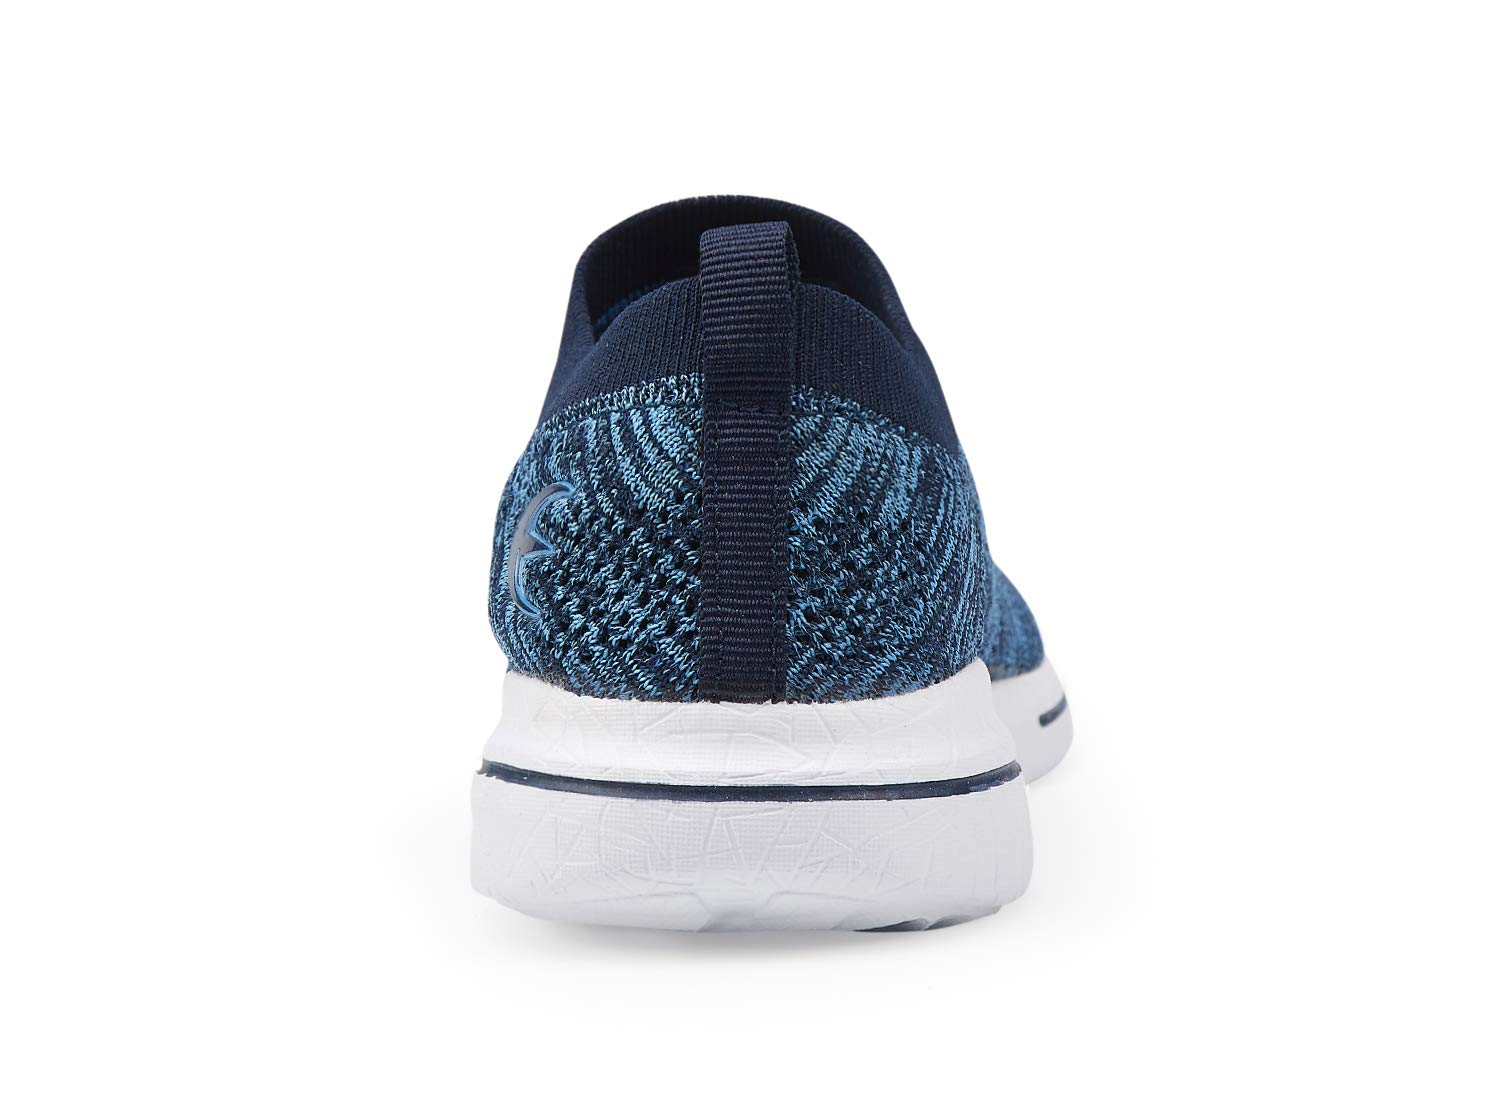 Women's Slip-On Sneakers Mesh Loafer Casual Beach Street Walking Shoes (7 B(M) US, Blue/White) by Leader shoes (Image #3)